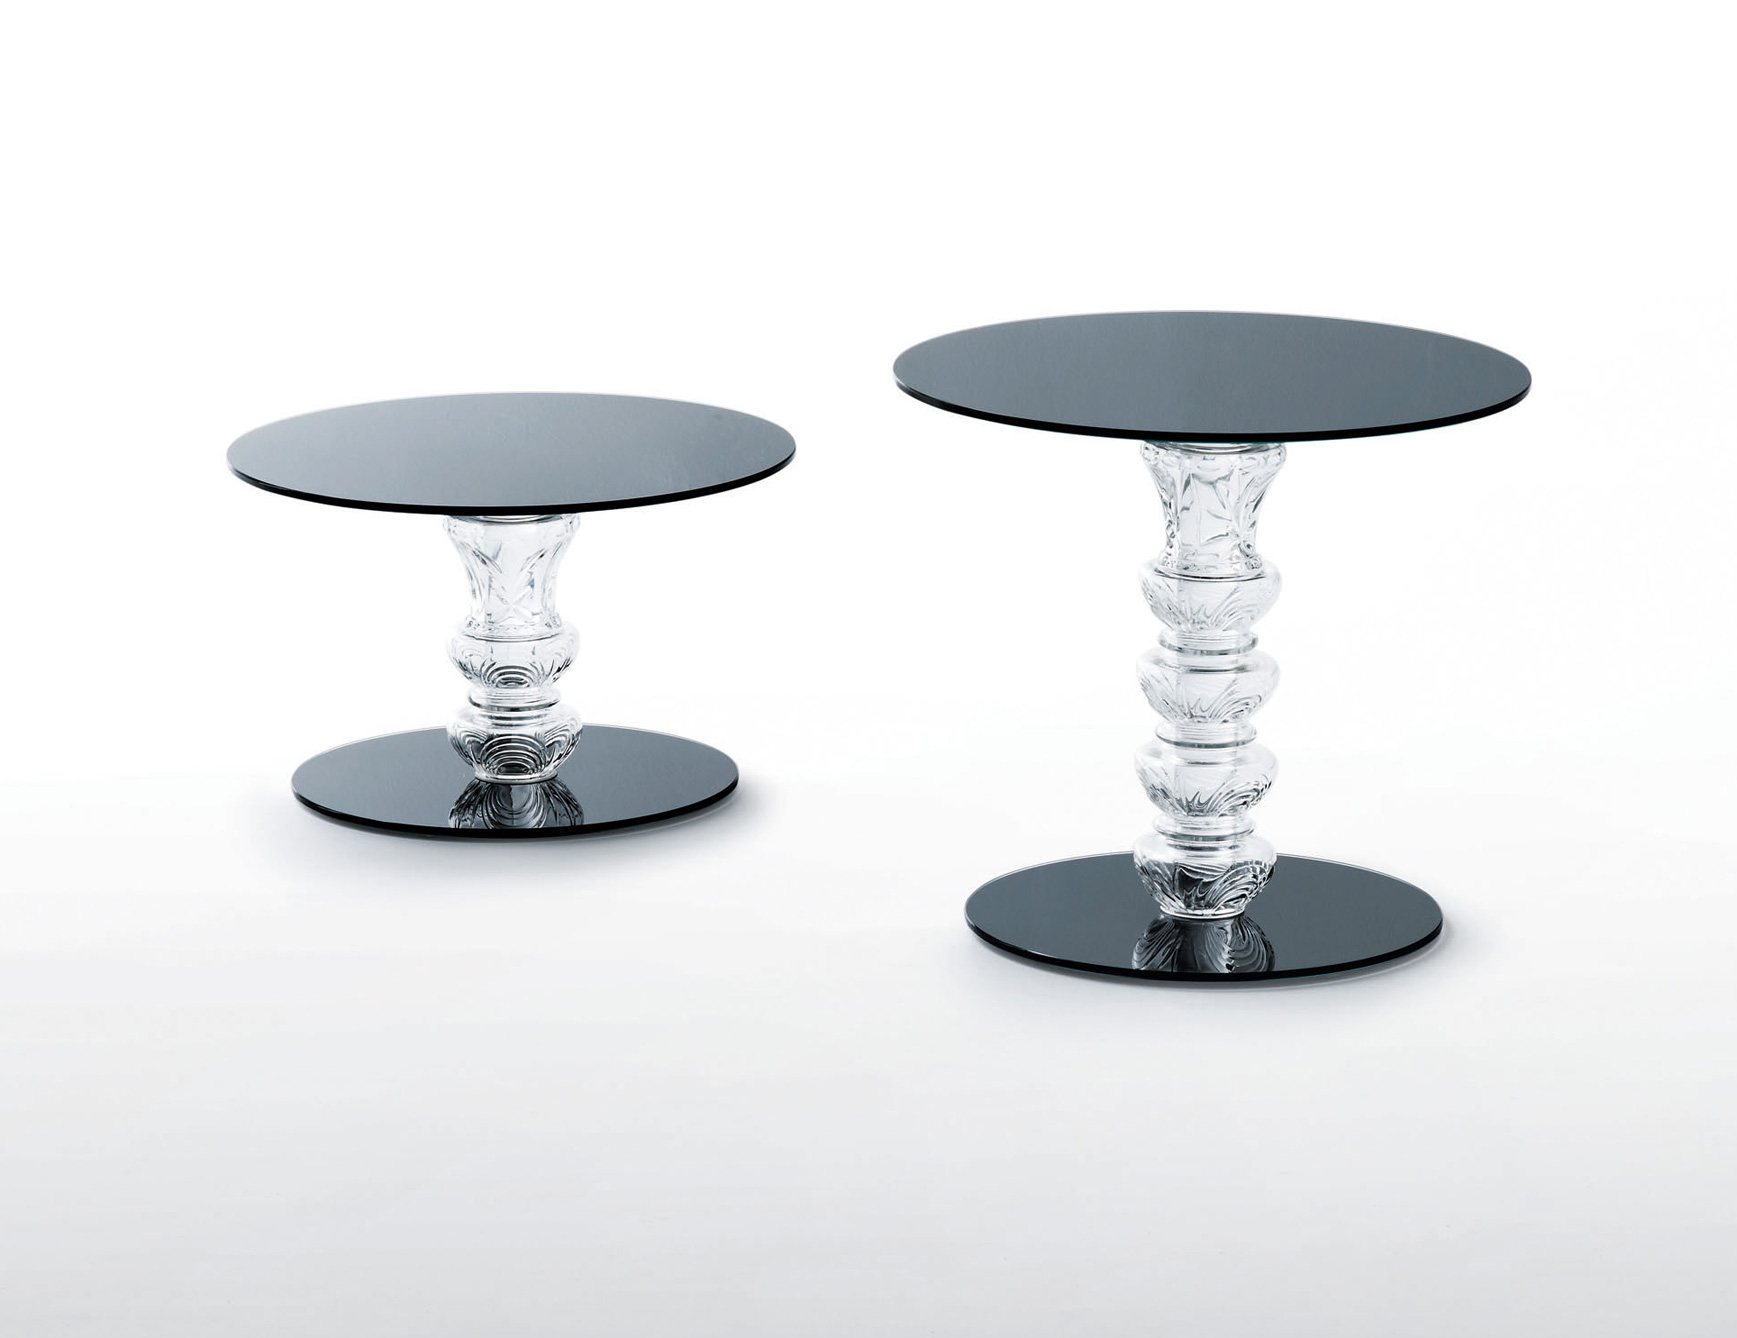 glas italia calice contemporary italian end table black glass accent tables patio sofa marble dining set bedside wall mounted side hairpin leg pottery barn white dishes folding